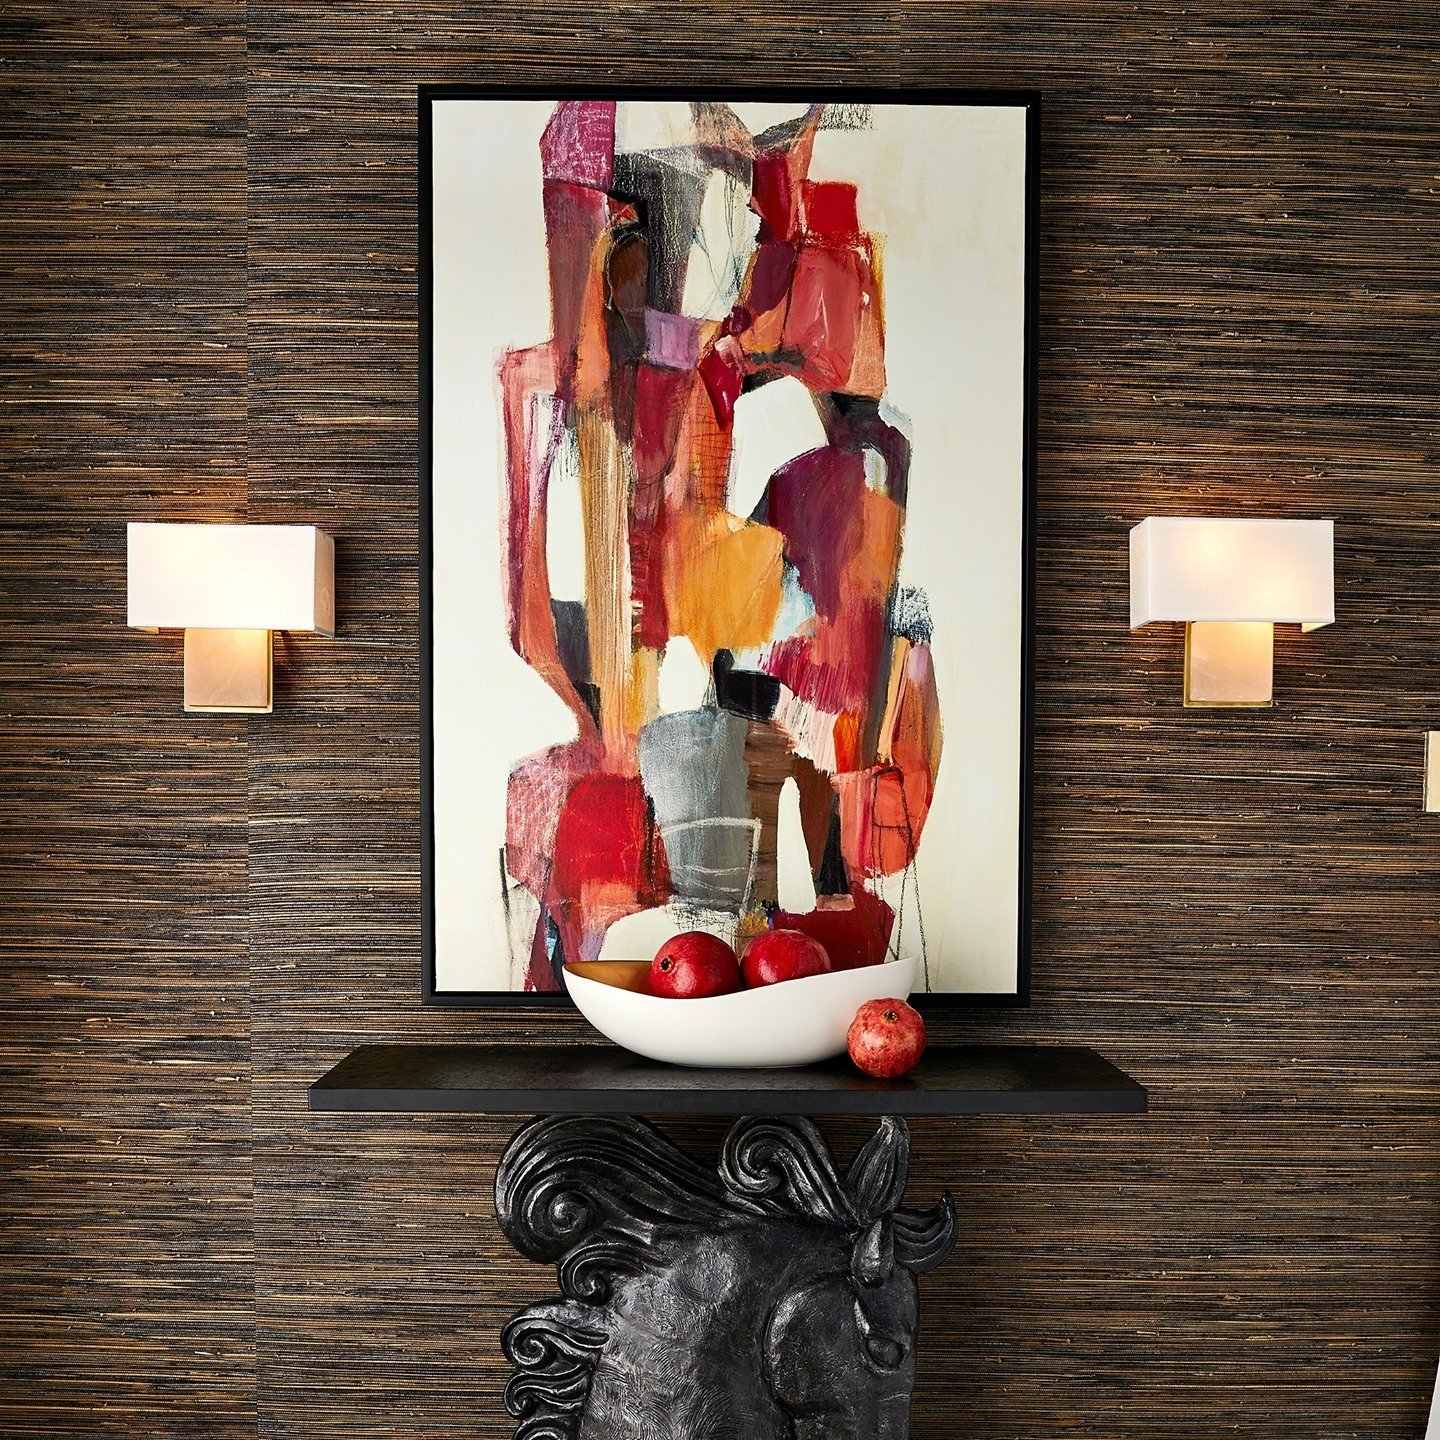 Retro abstract art brings pops or orange and red to this chic room